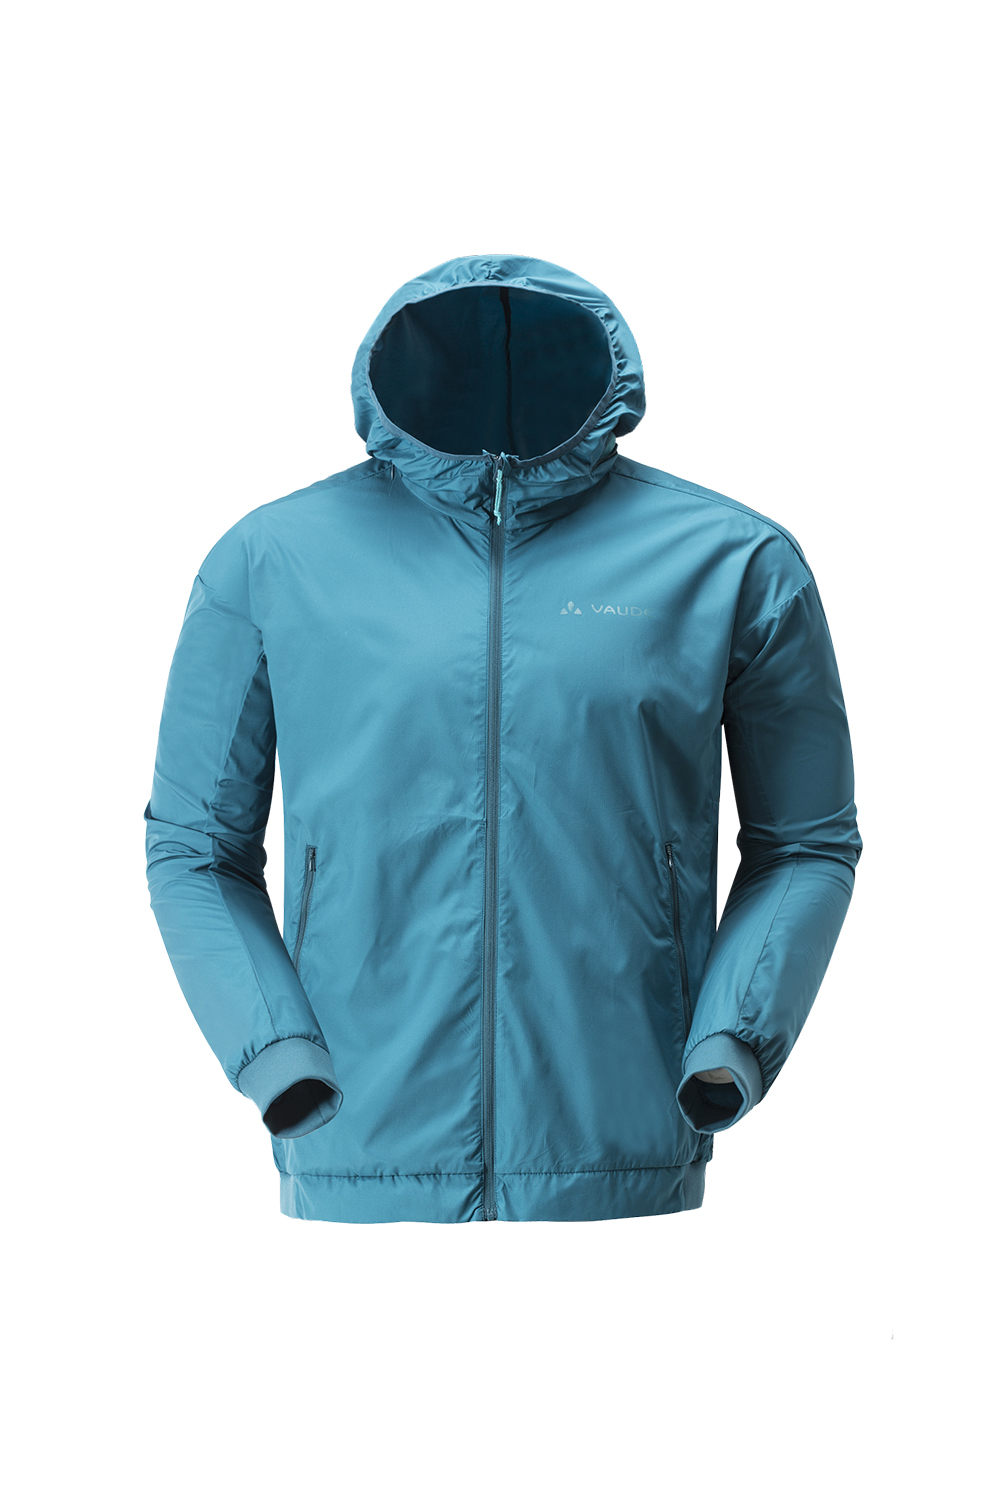 ME SOLITA RE 3IN1 WINDSHELL JACKET 男款三合一风衣